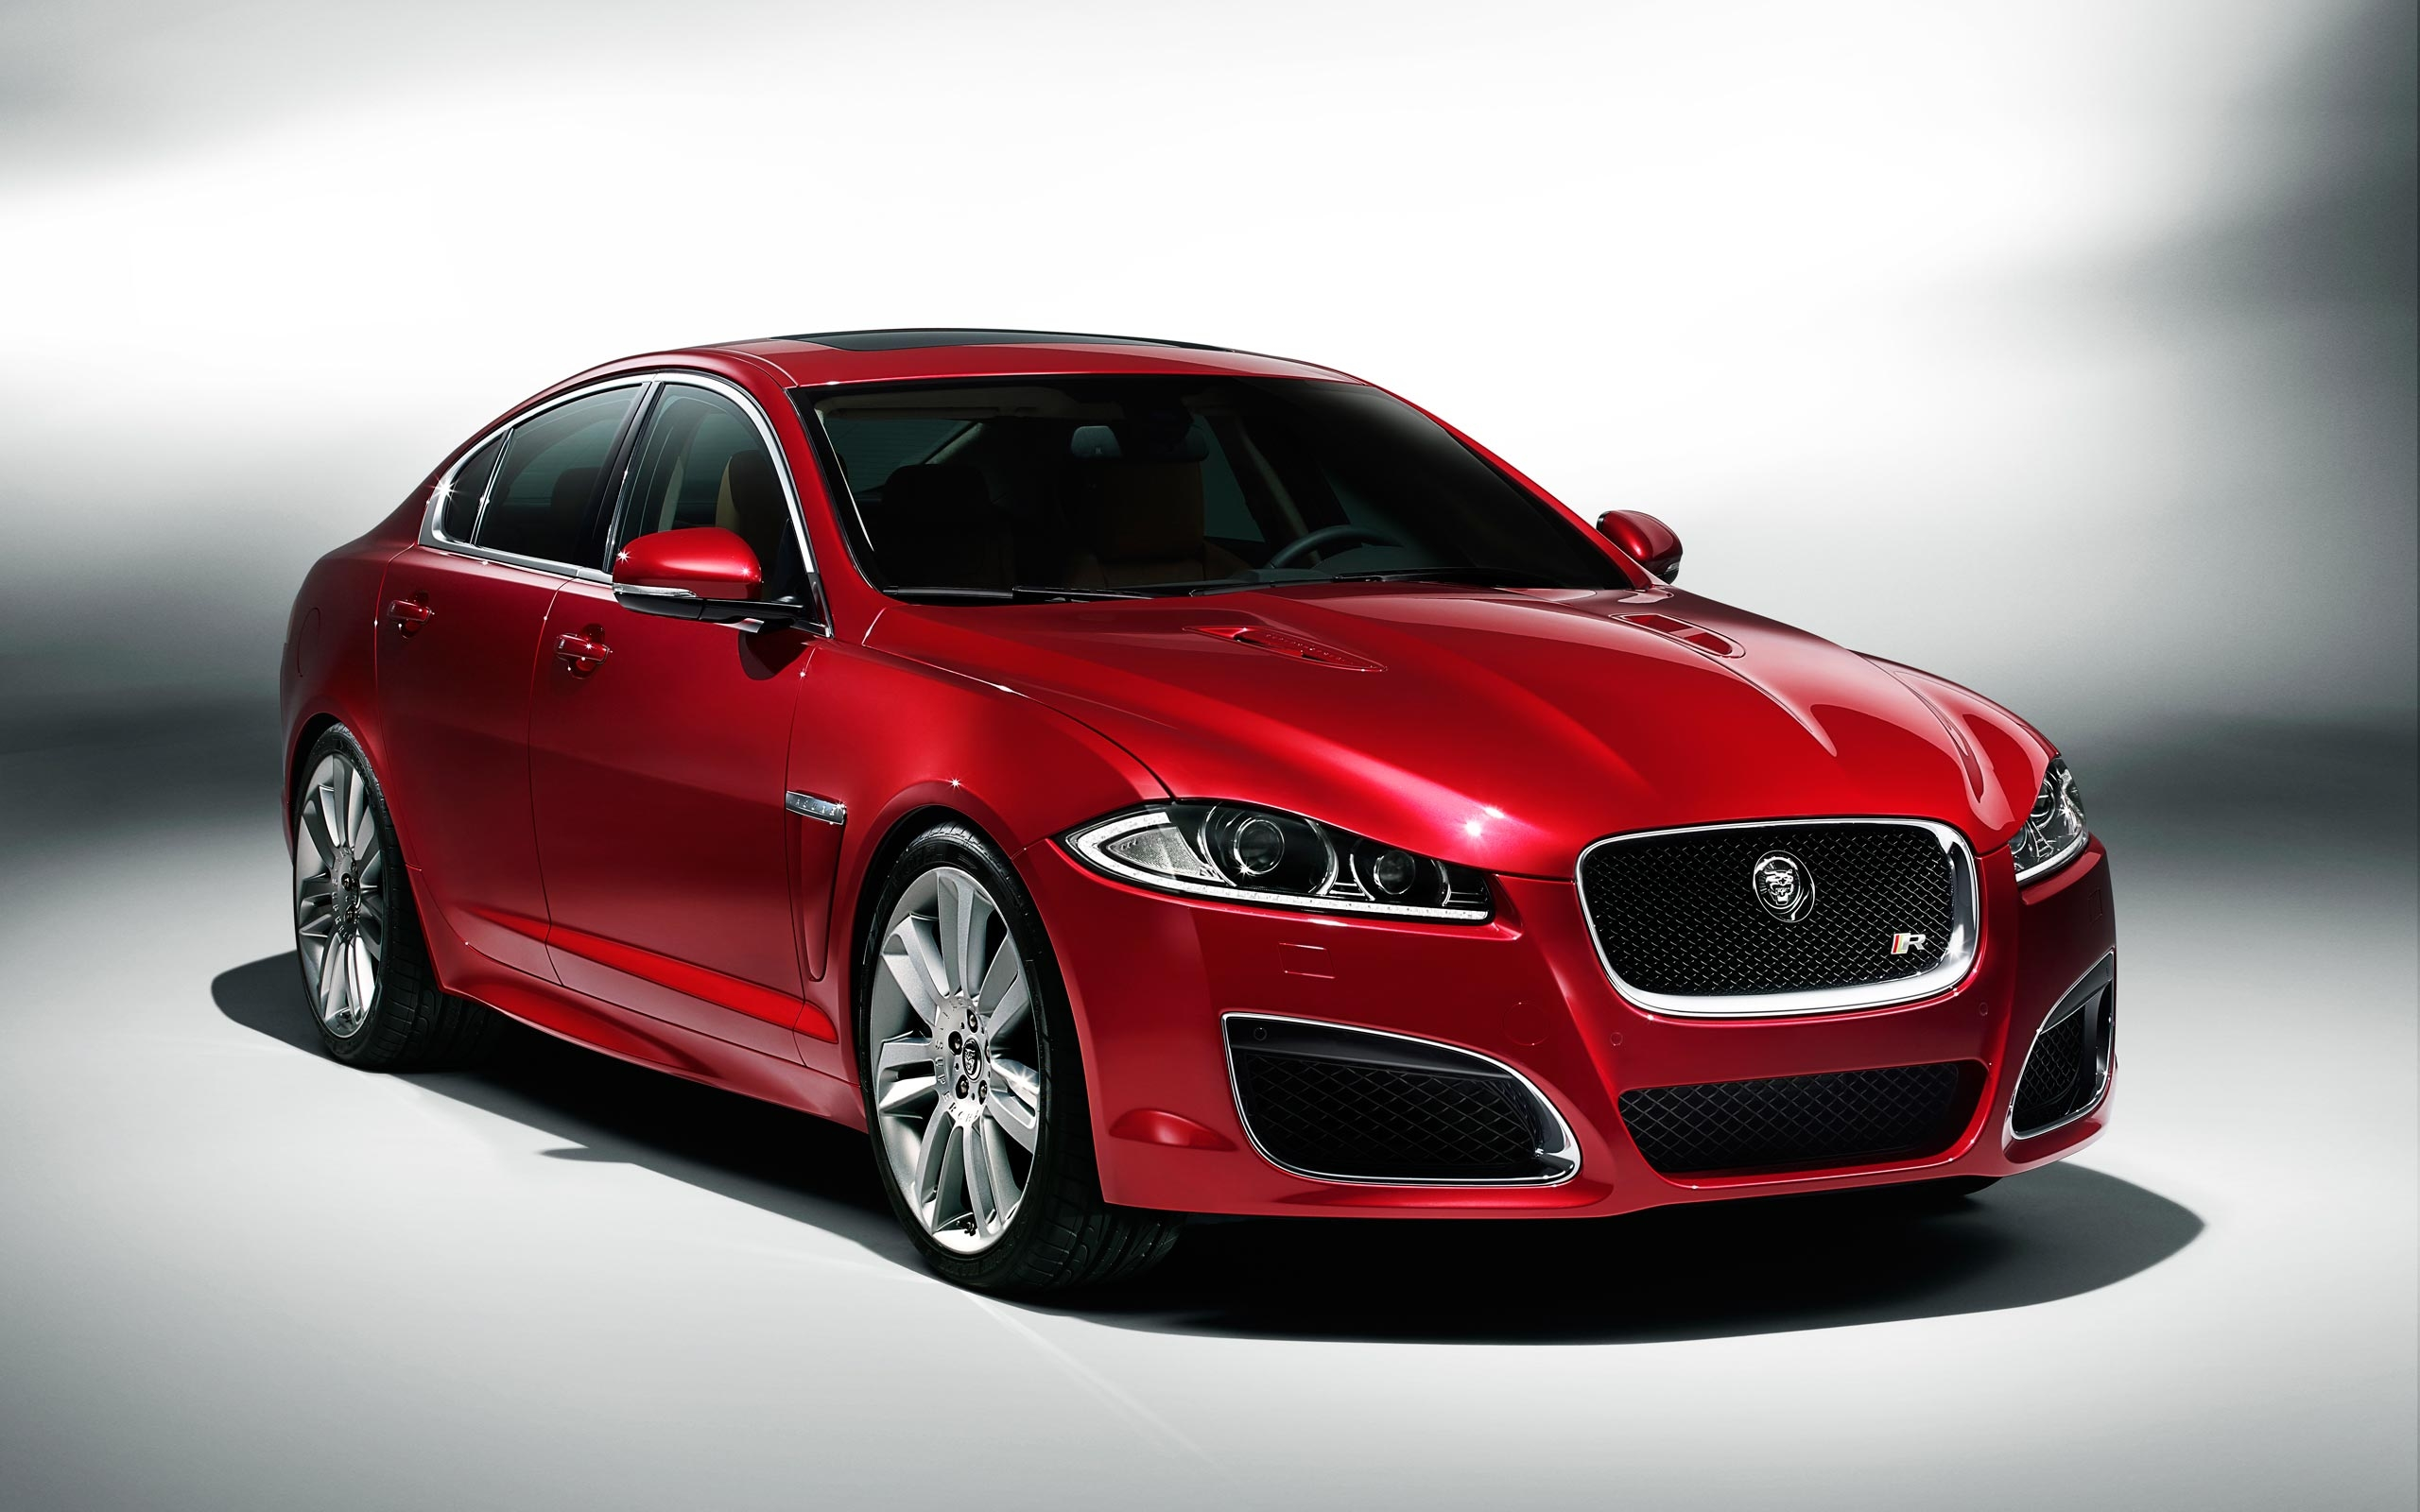 Jaguar Car Wallpaper Hd Jaguar Xf Car Hd 214692 Hd Wallpaper Backgrounds Download